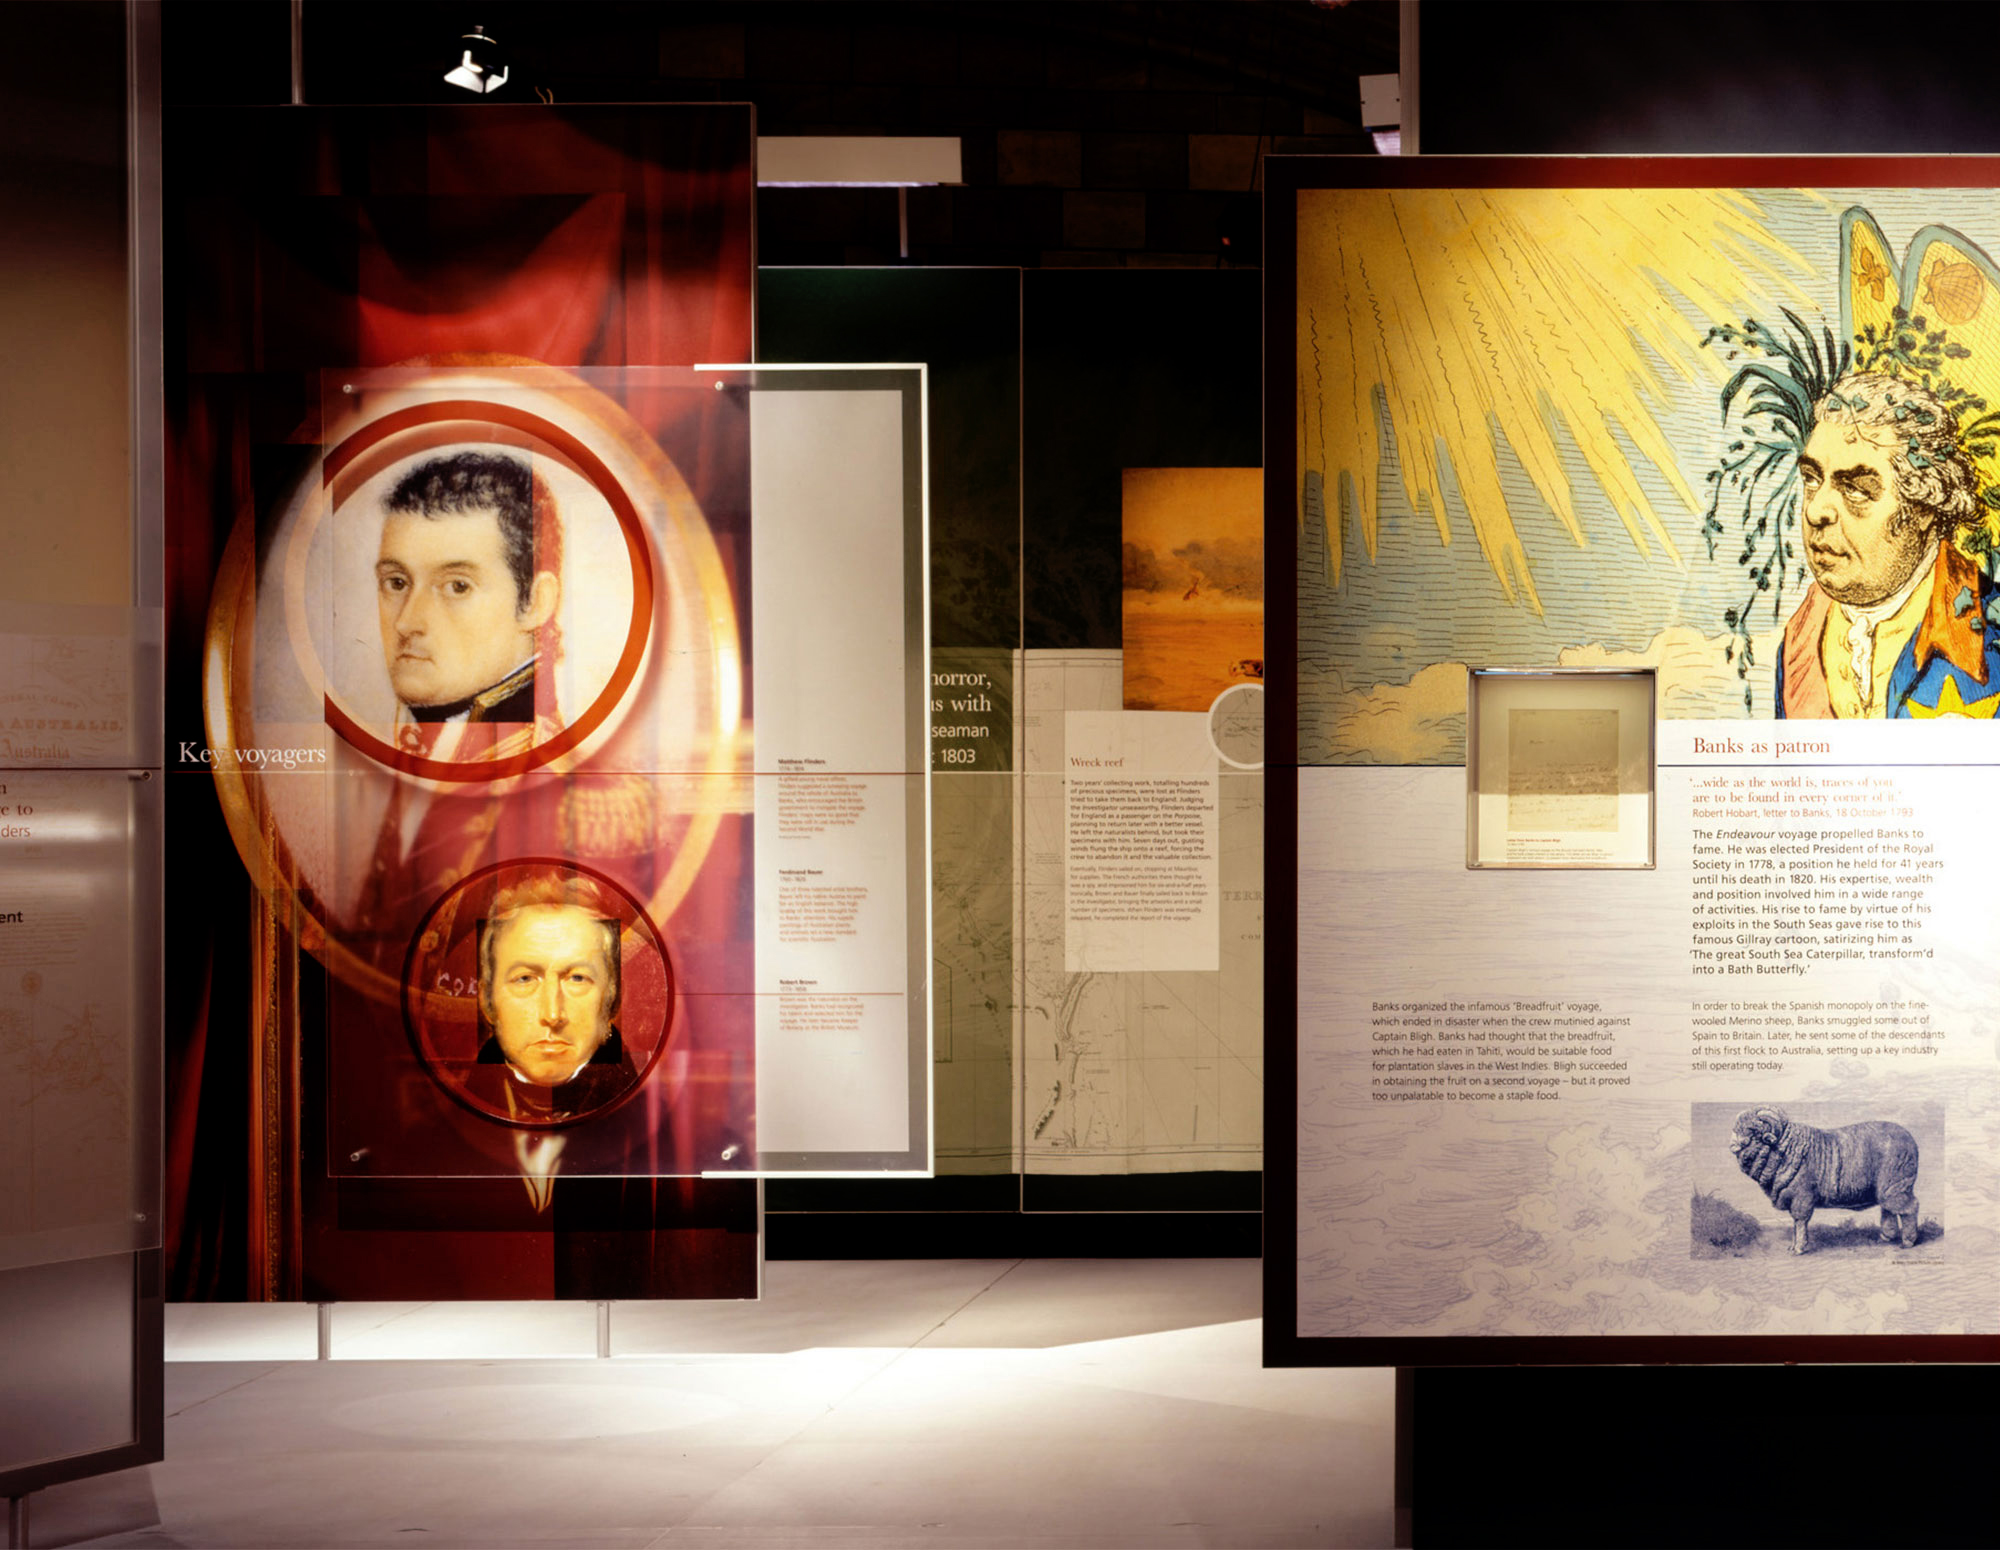 Voyages of Discovery Exhibition